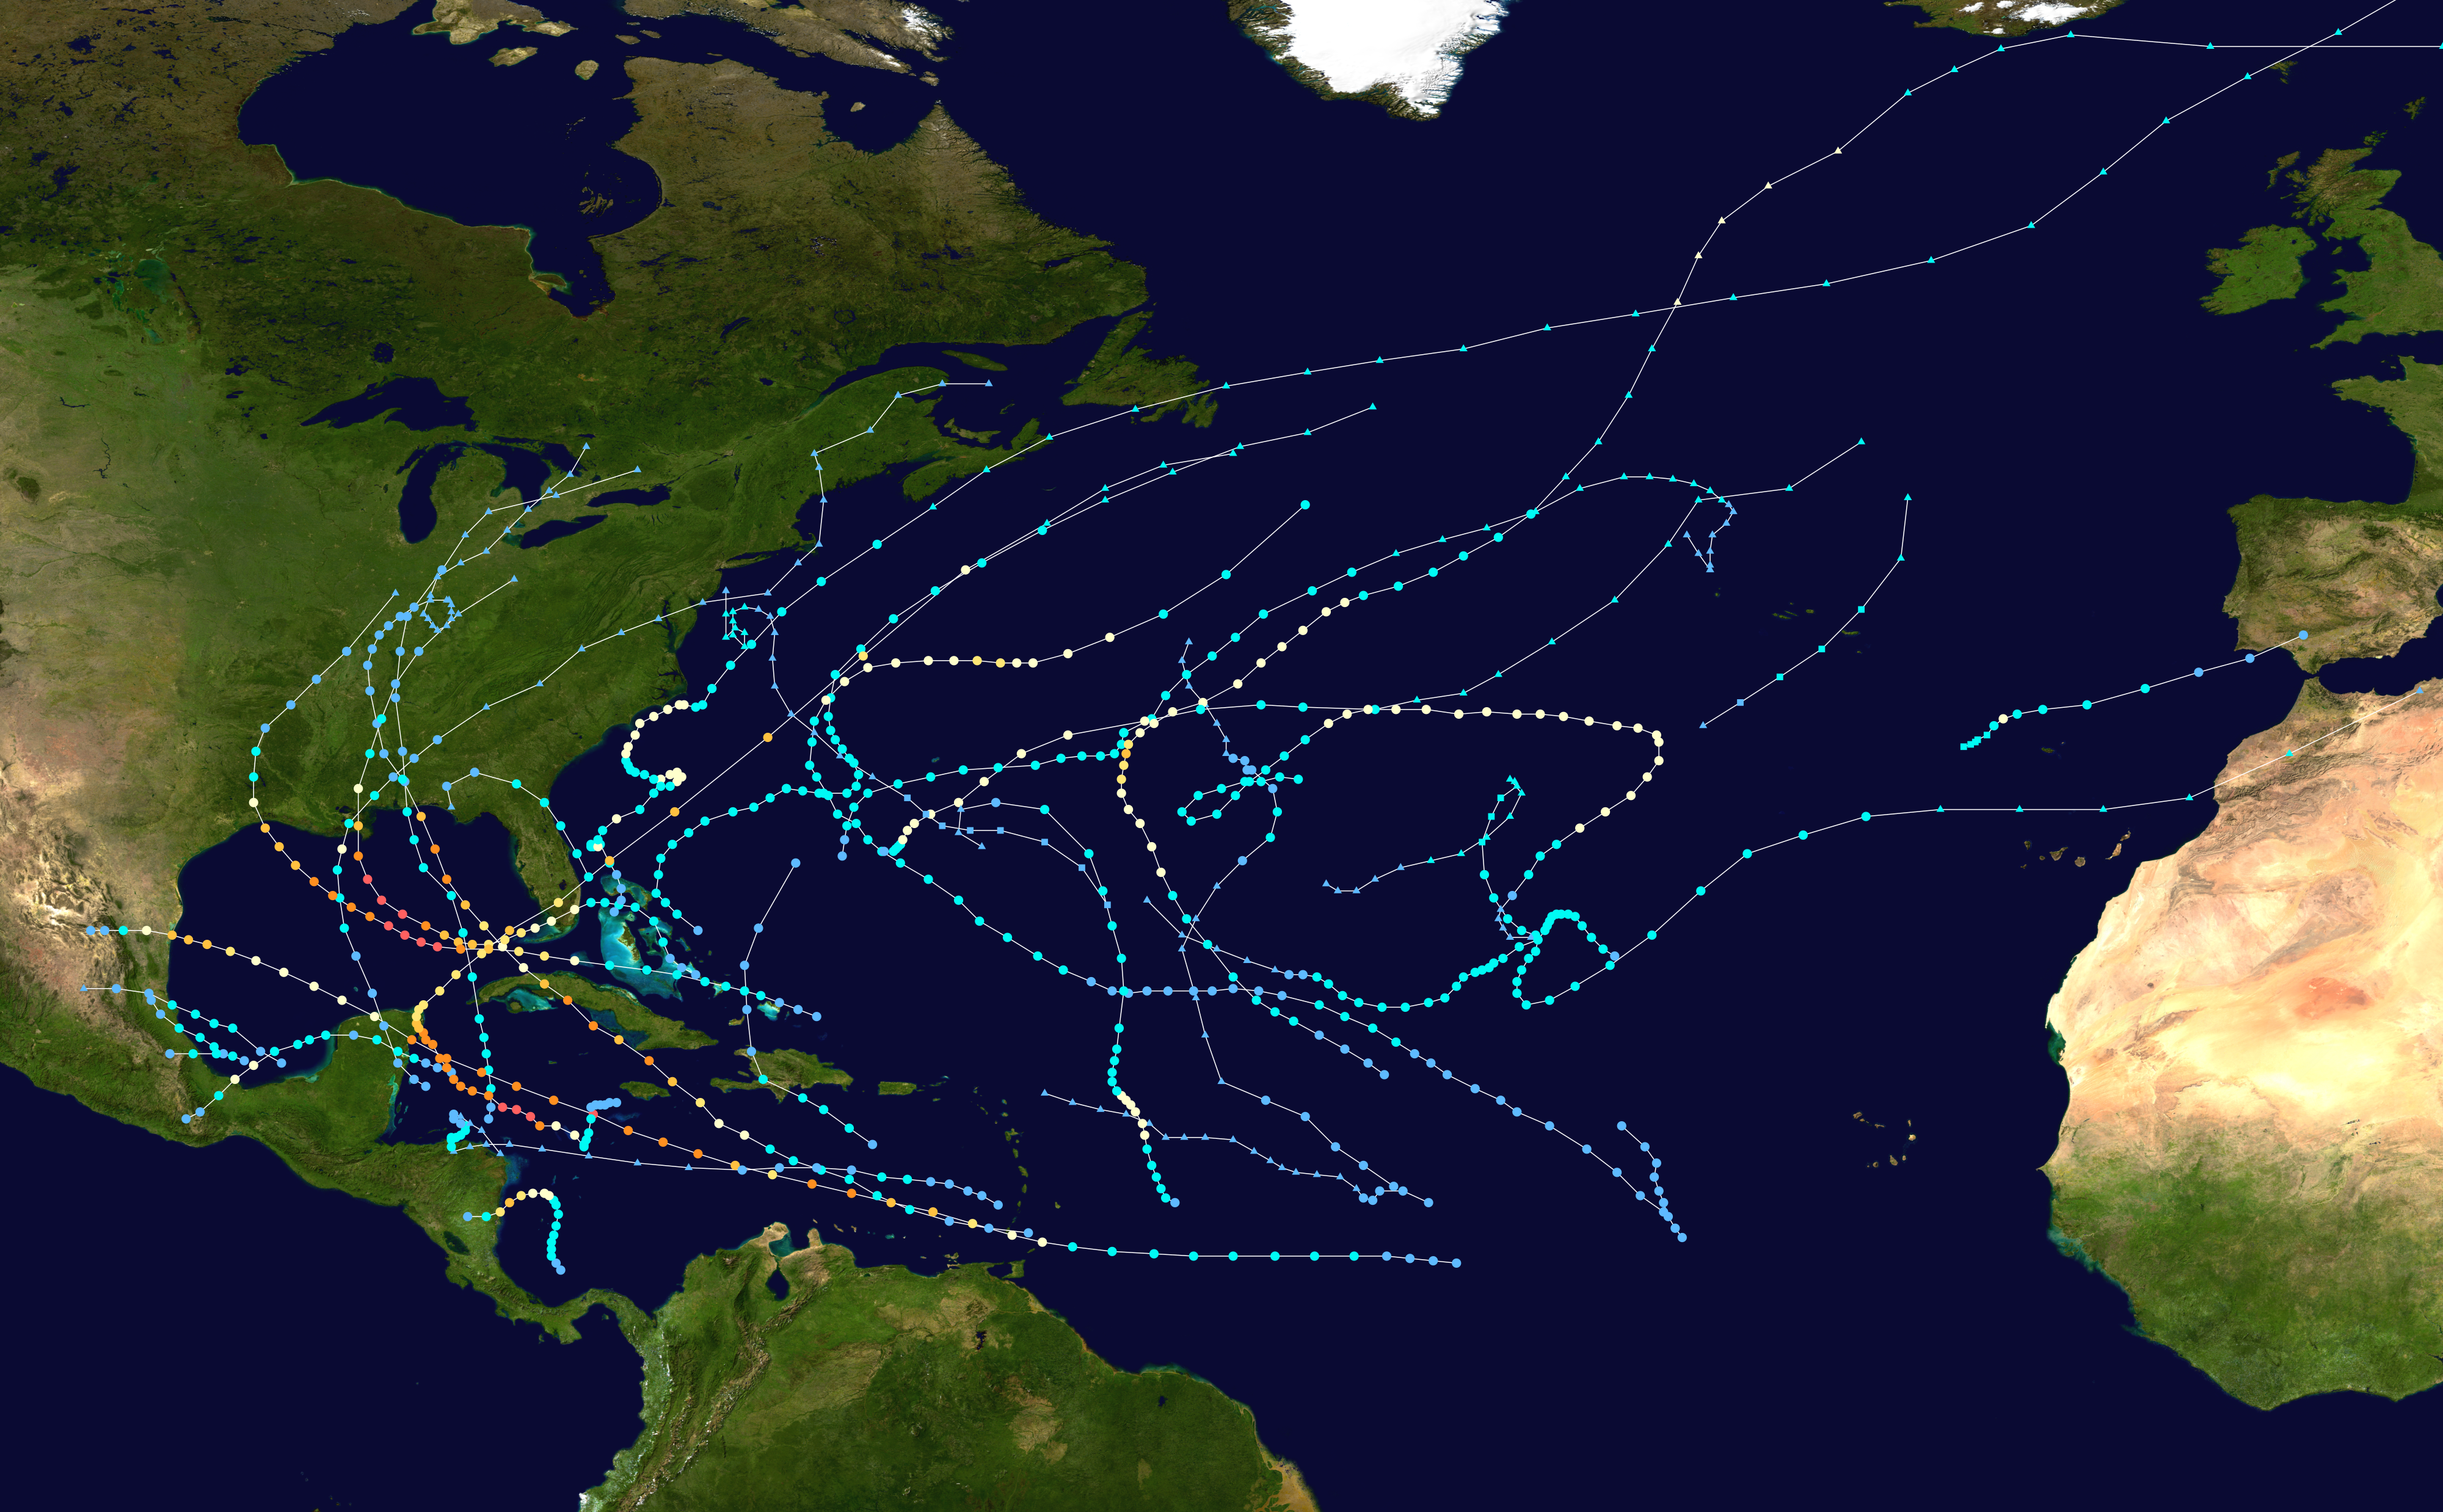 2005 Atlantic Hurricane Season Tracks Of About 28 Tropical Storms Including 15 Hurricanes Cer In The Caribbean And Season Summary Map